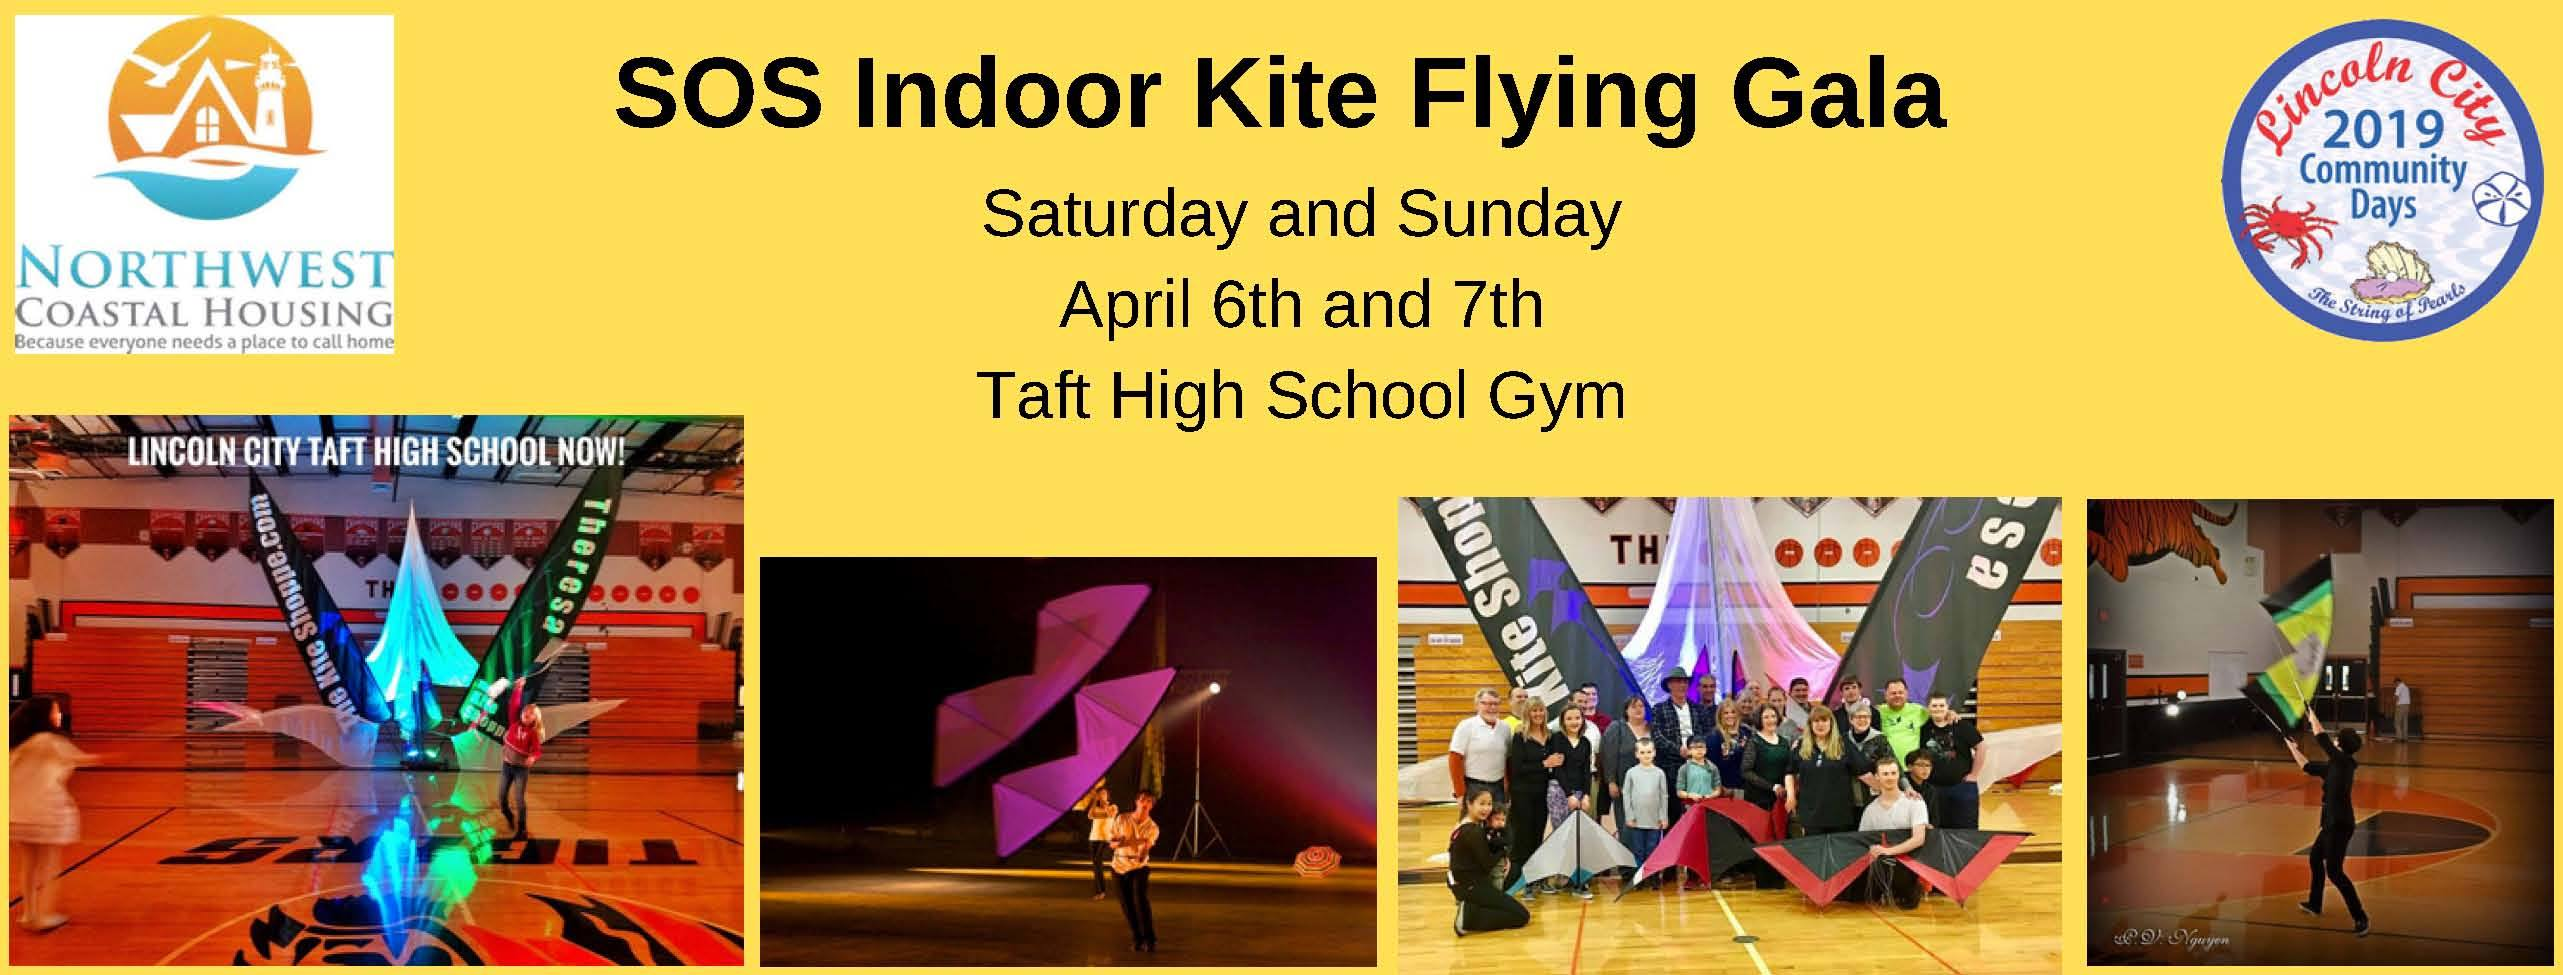 Indoor kite flying lincoln city